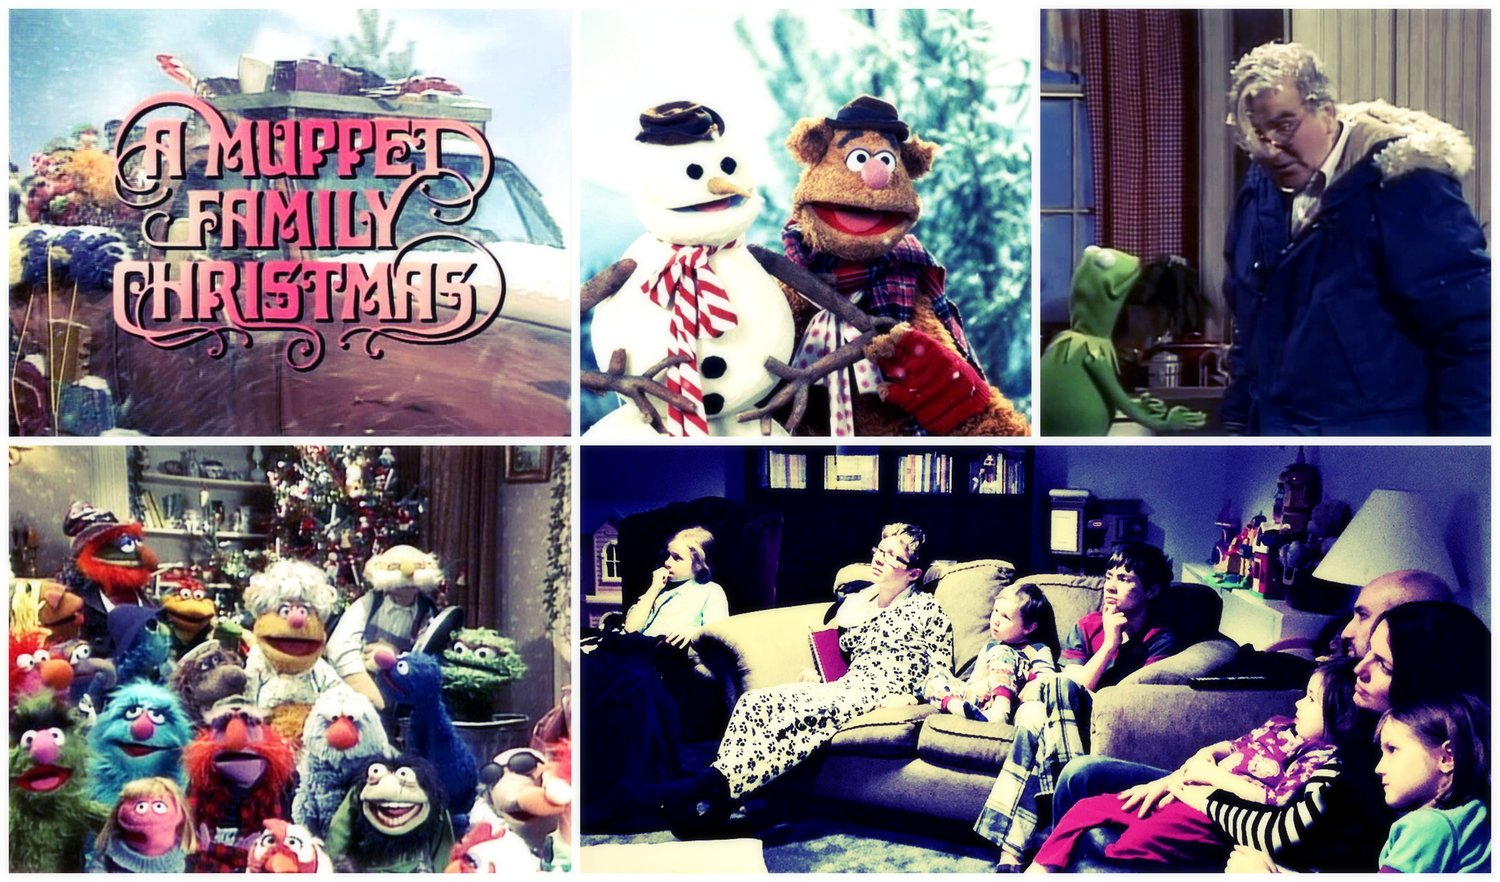 Muppet Family Christmas.How A Muppet Family Christmas Inspired One Dad To Father